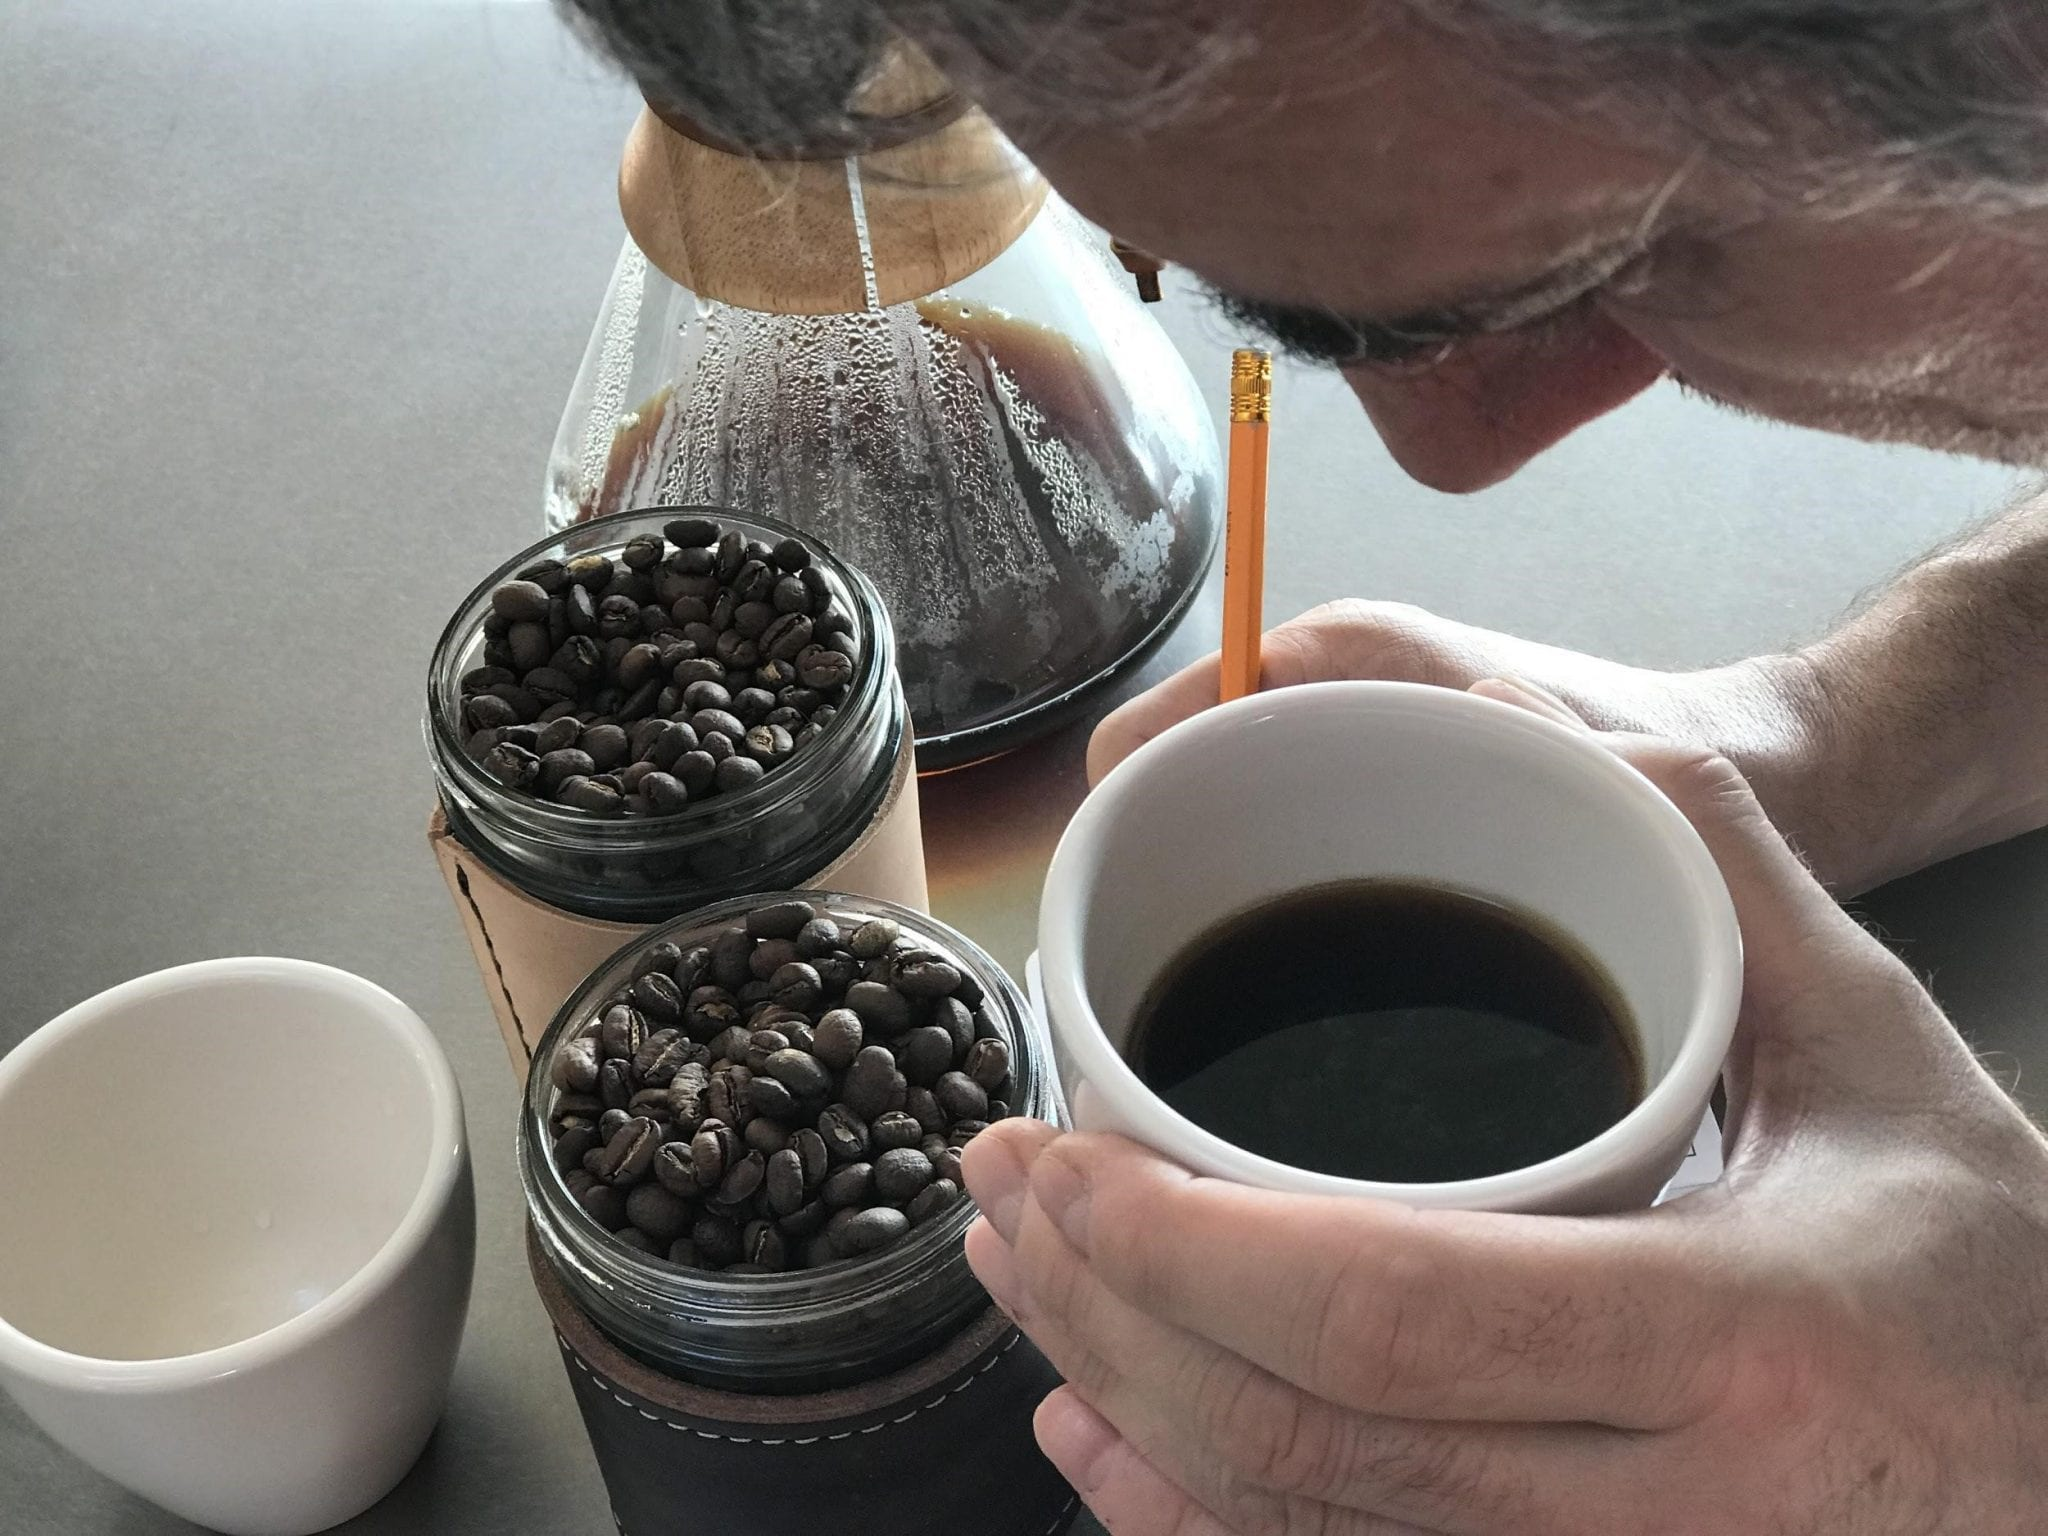 Roaster checking the aroma of a sample of roasted beans